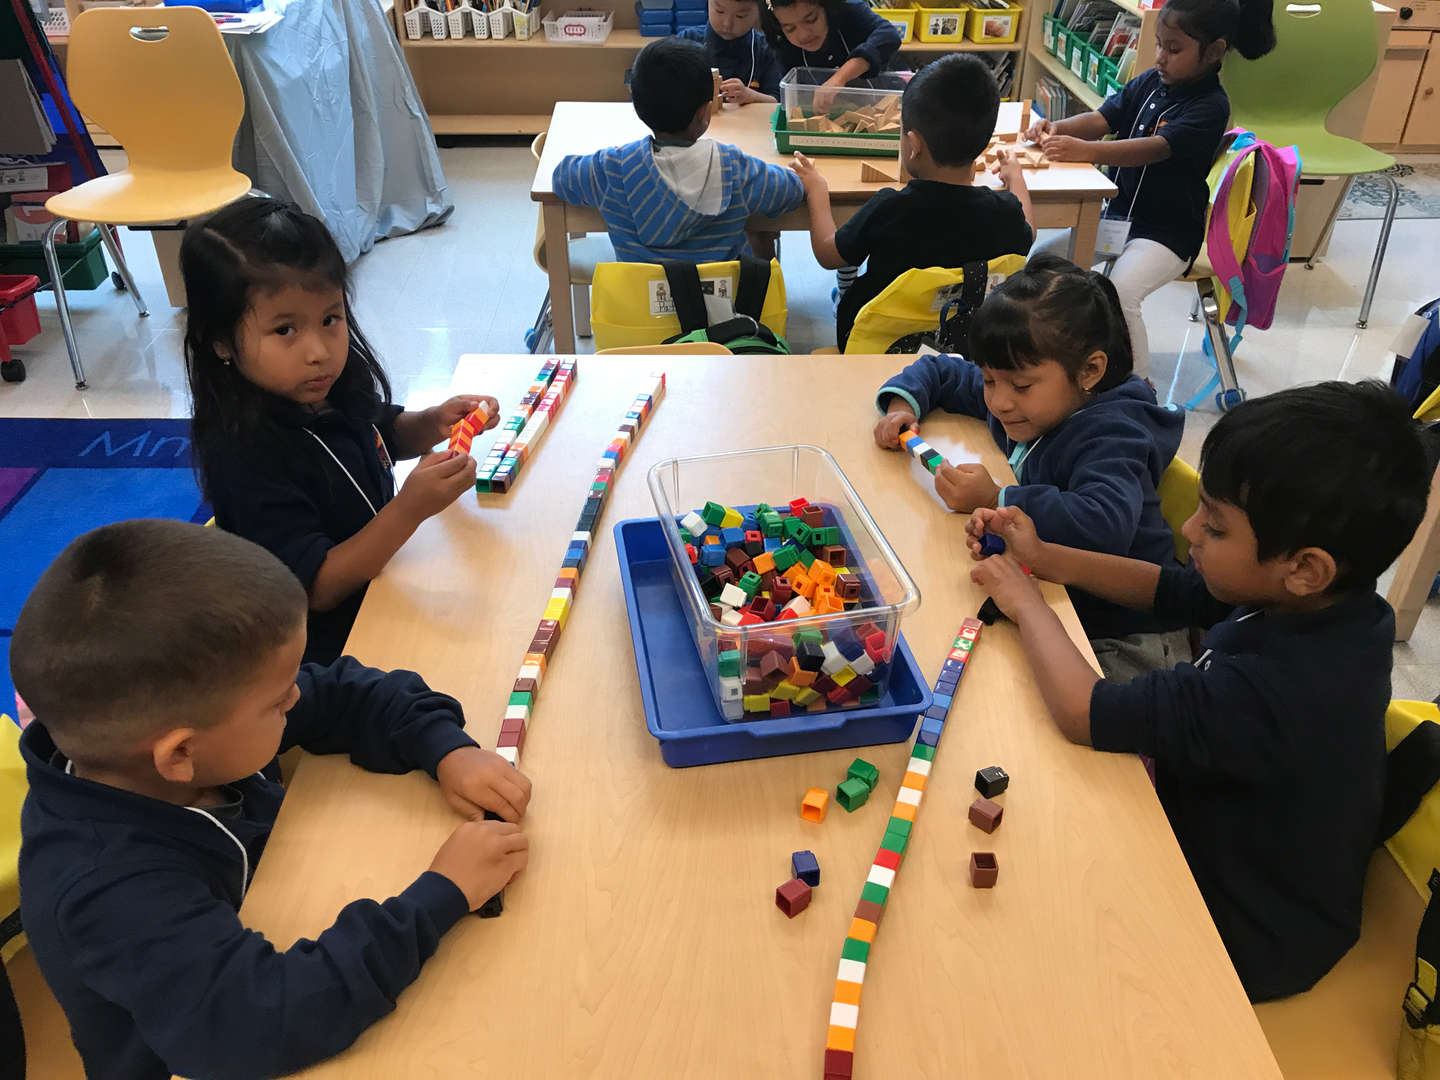 Students playing with Legos